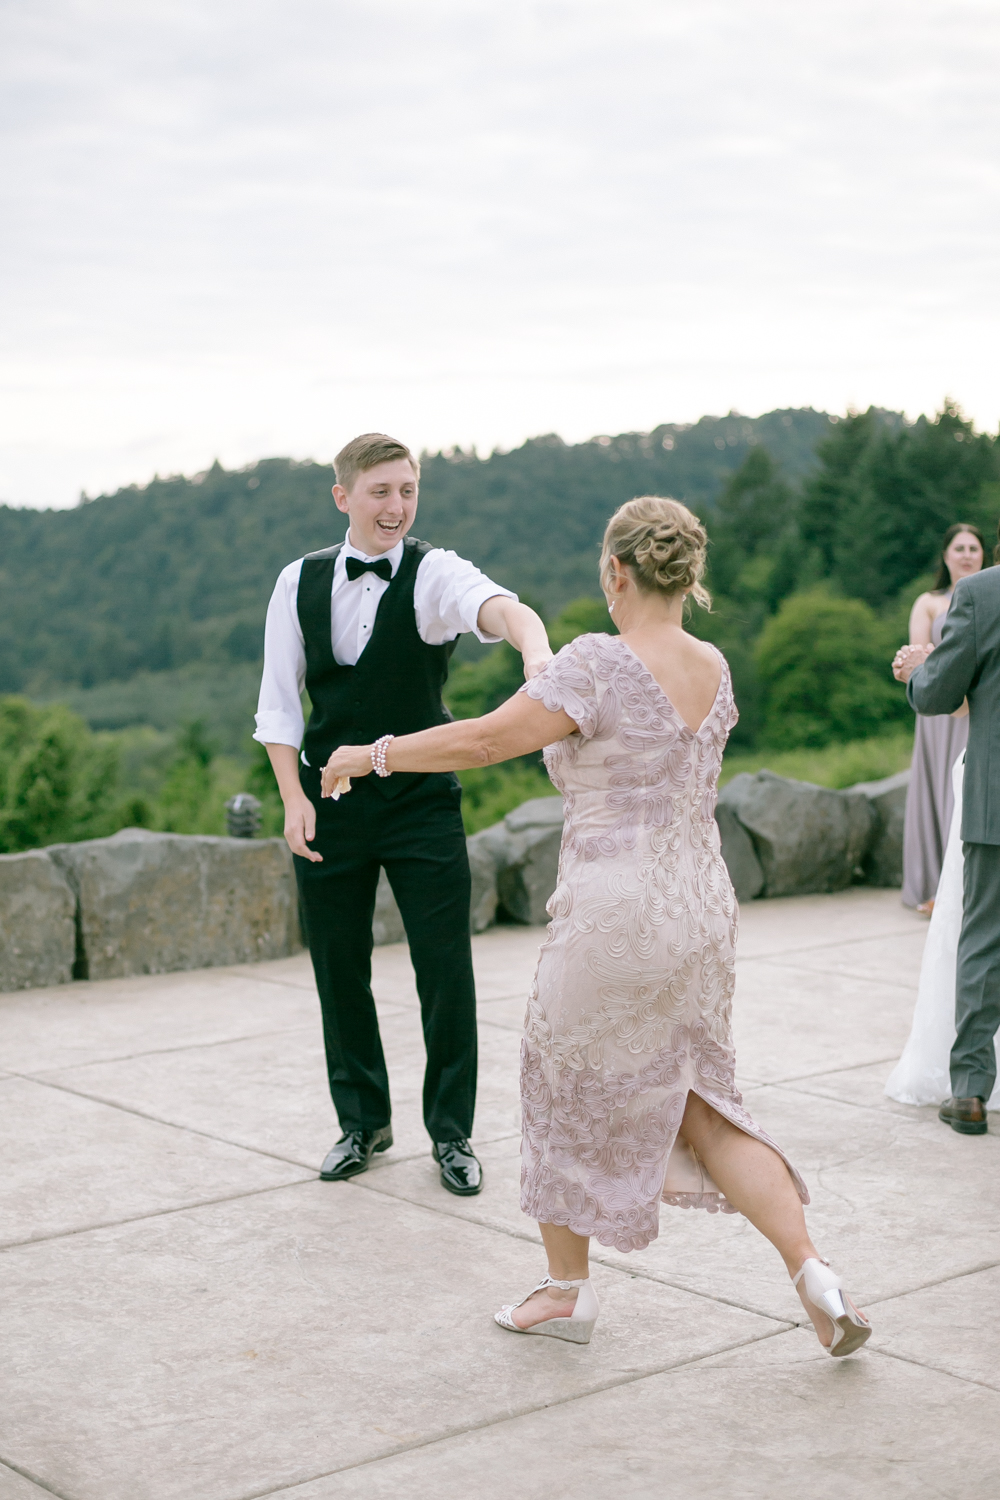 Youngberg Hill Vineyard Wedding in Wine Country Oregon - Corrie Mick Photography-455.jpg